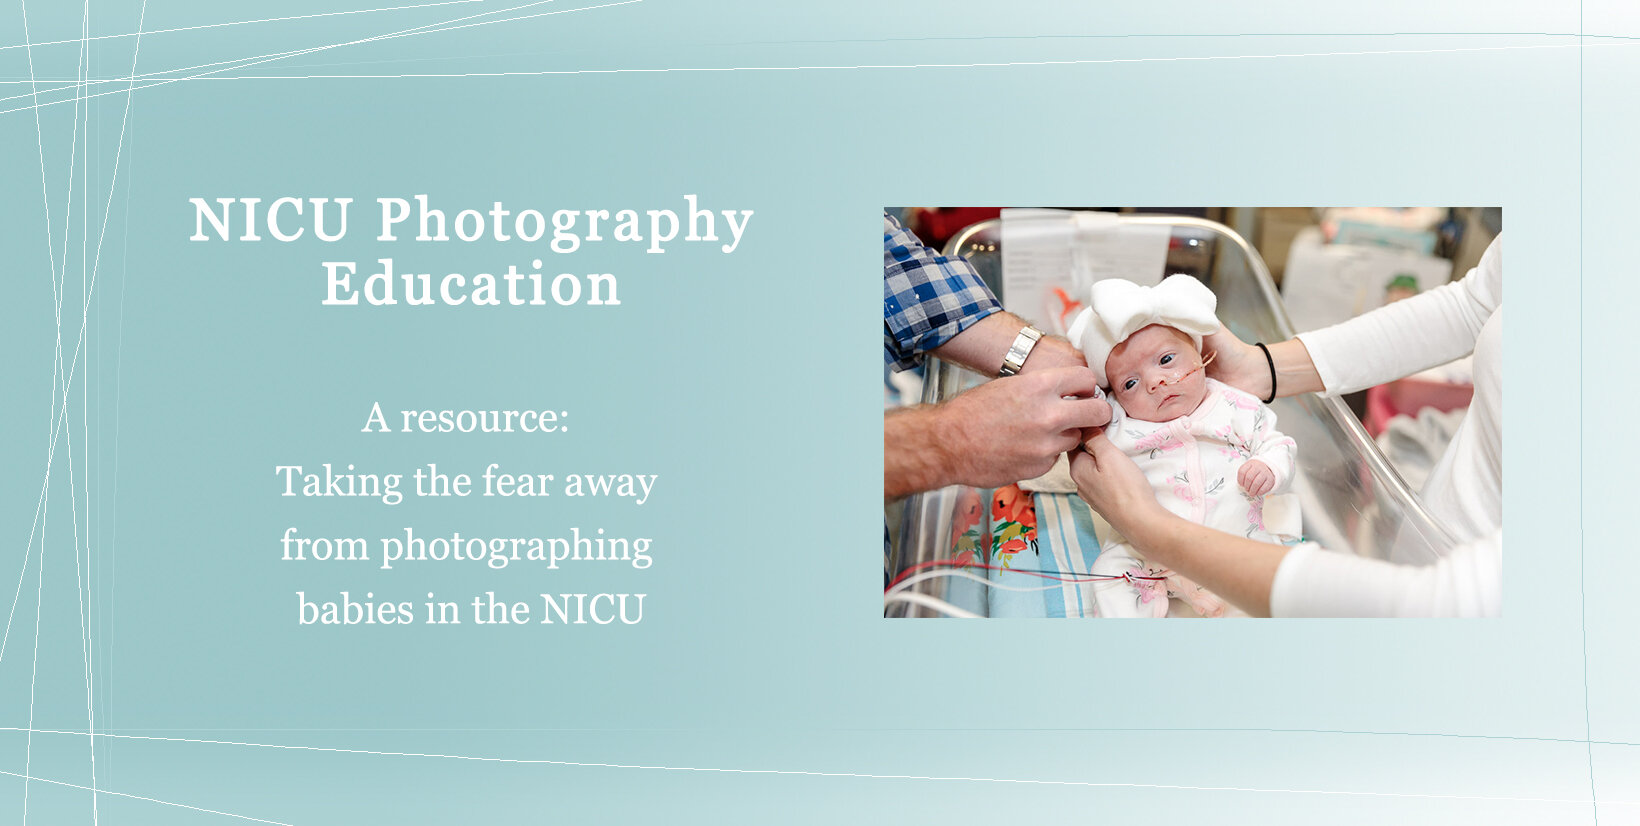 Join our private Facebook Community to learn more about photographing babies in the NICU -